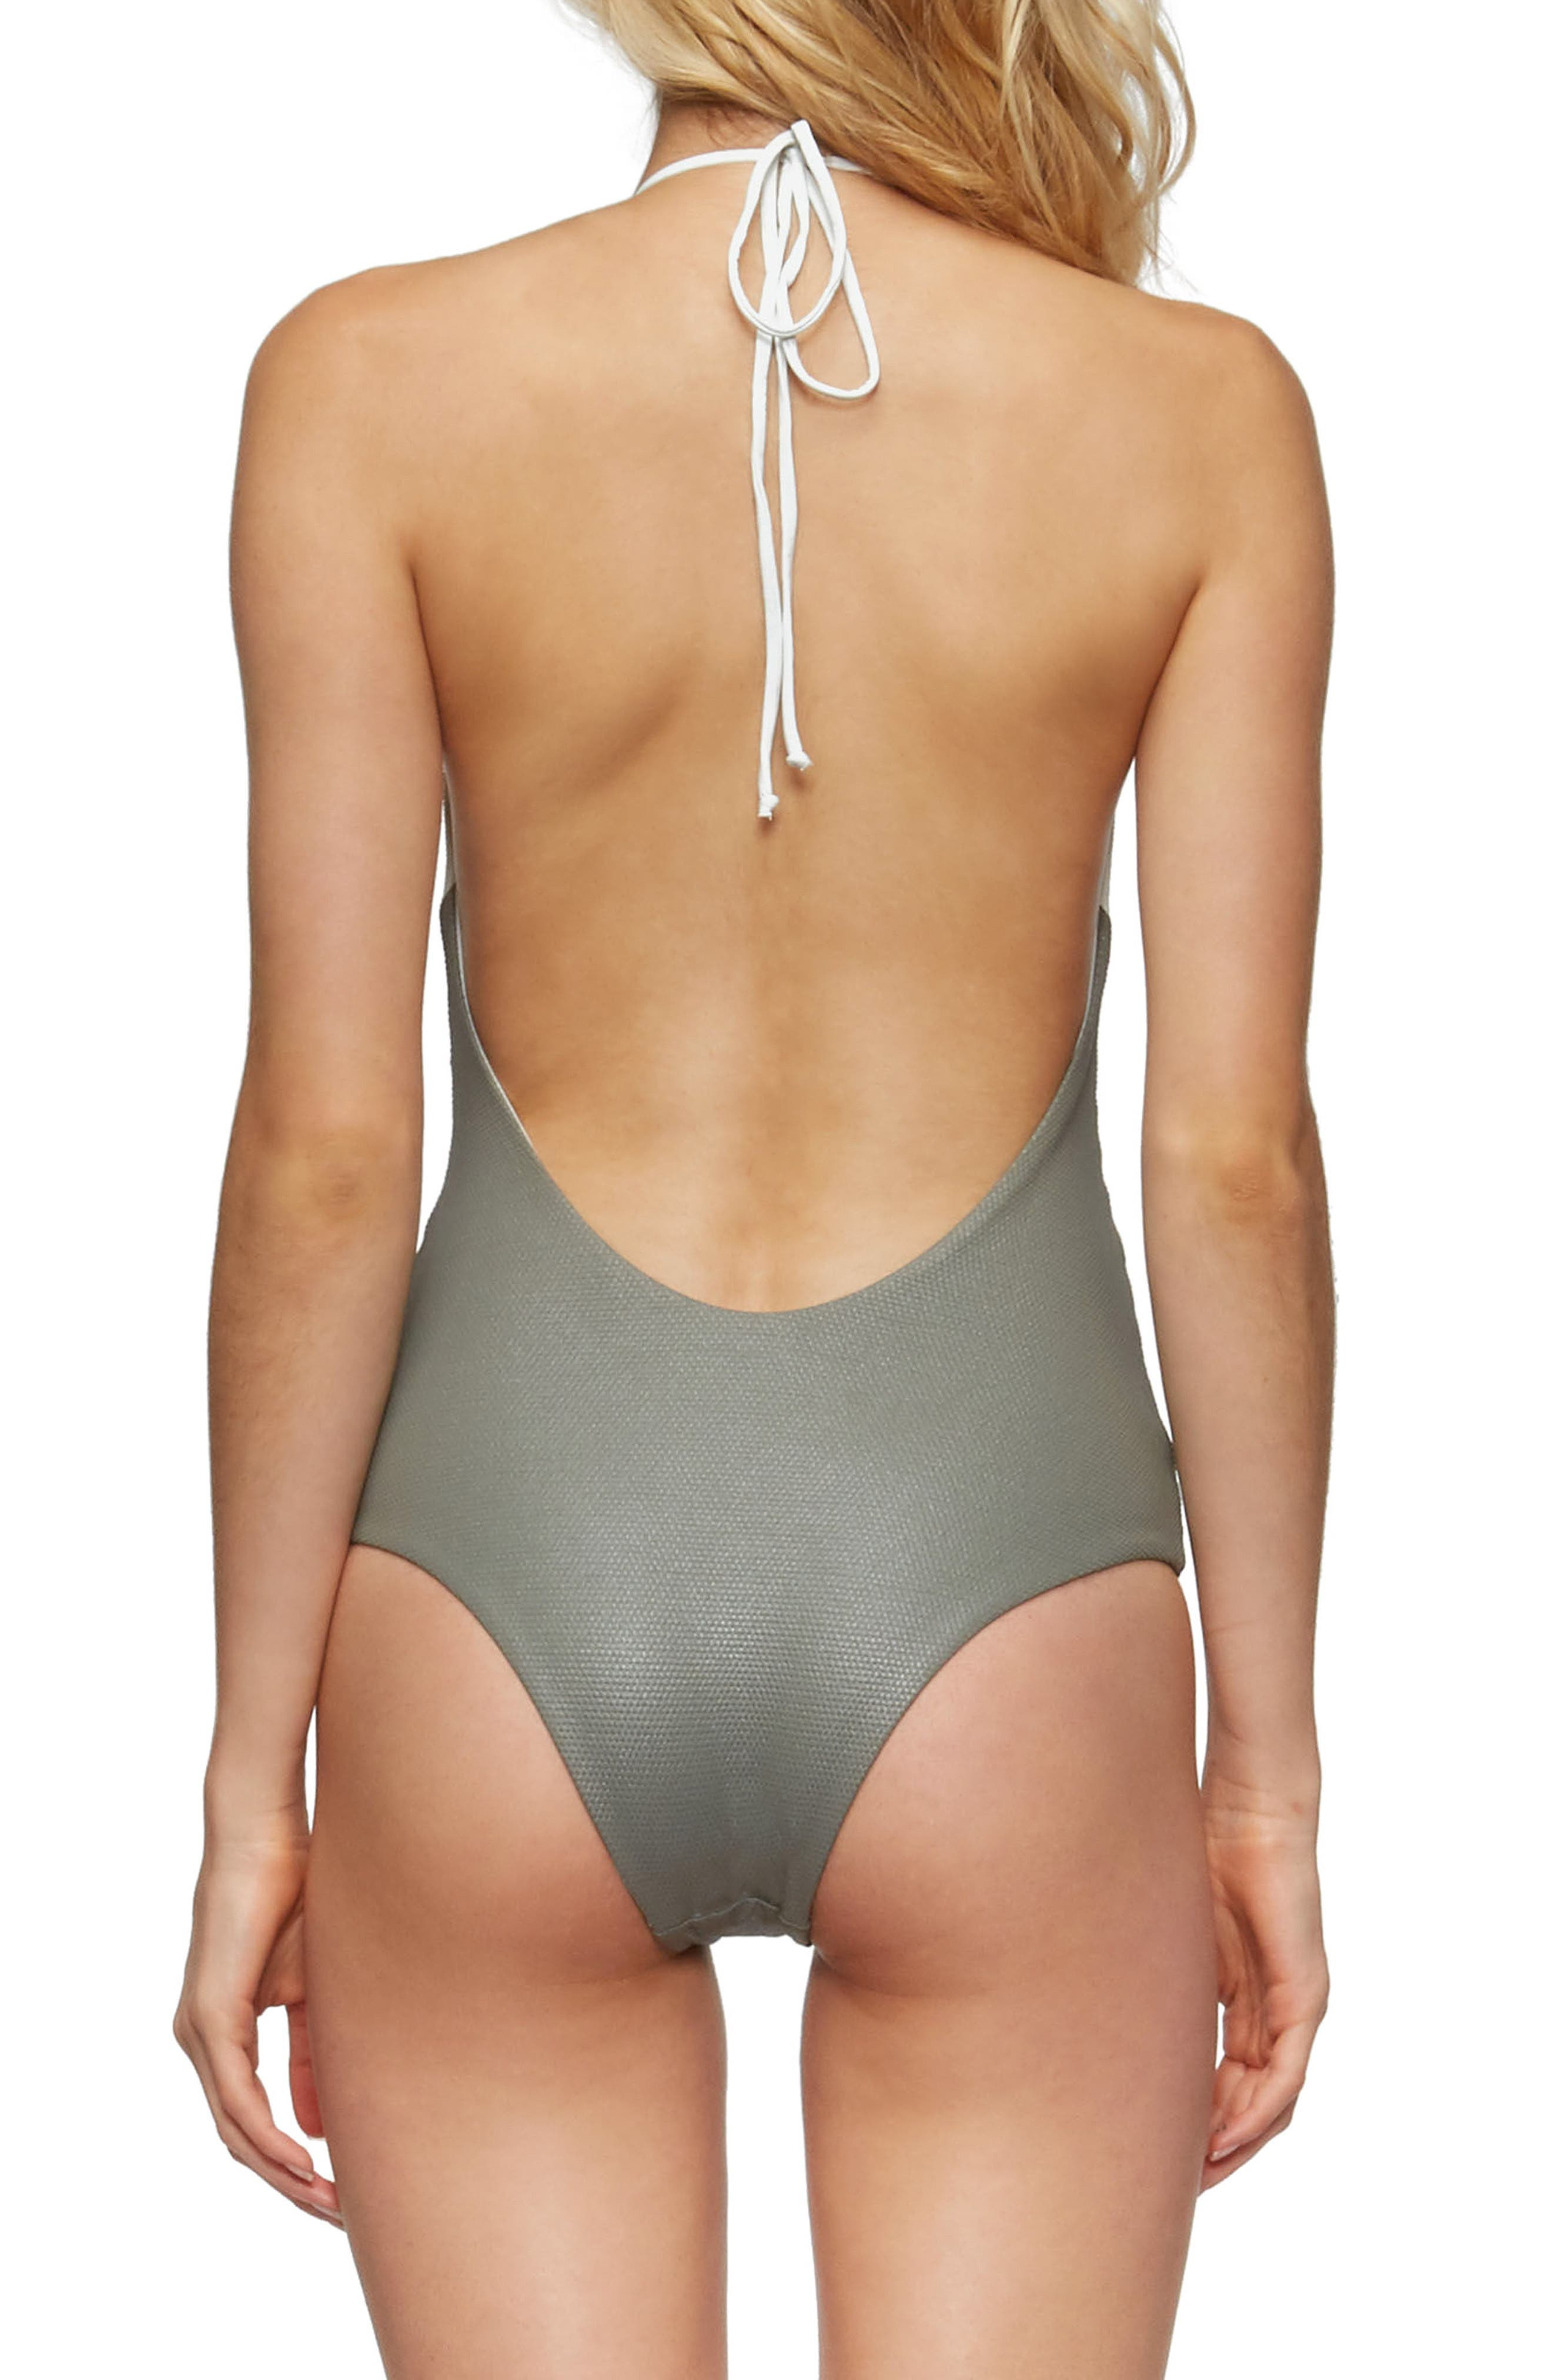 Chase Glossy One-Piece Swimsuit,                             Alternate thumbnail 2, color,                             Cove Grey